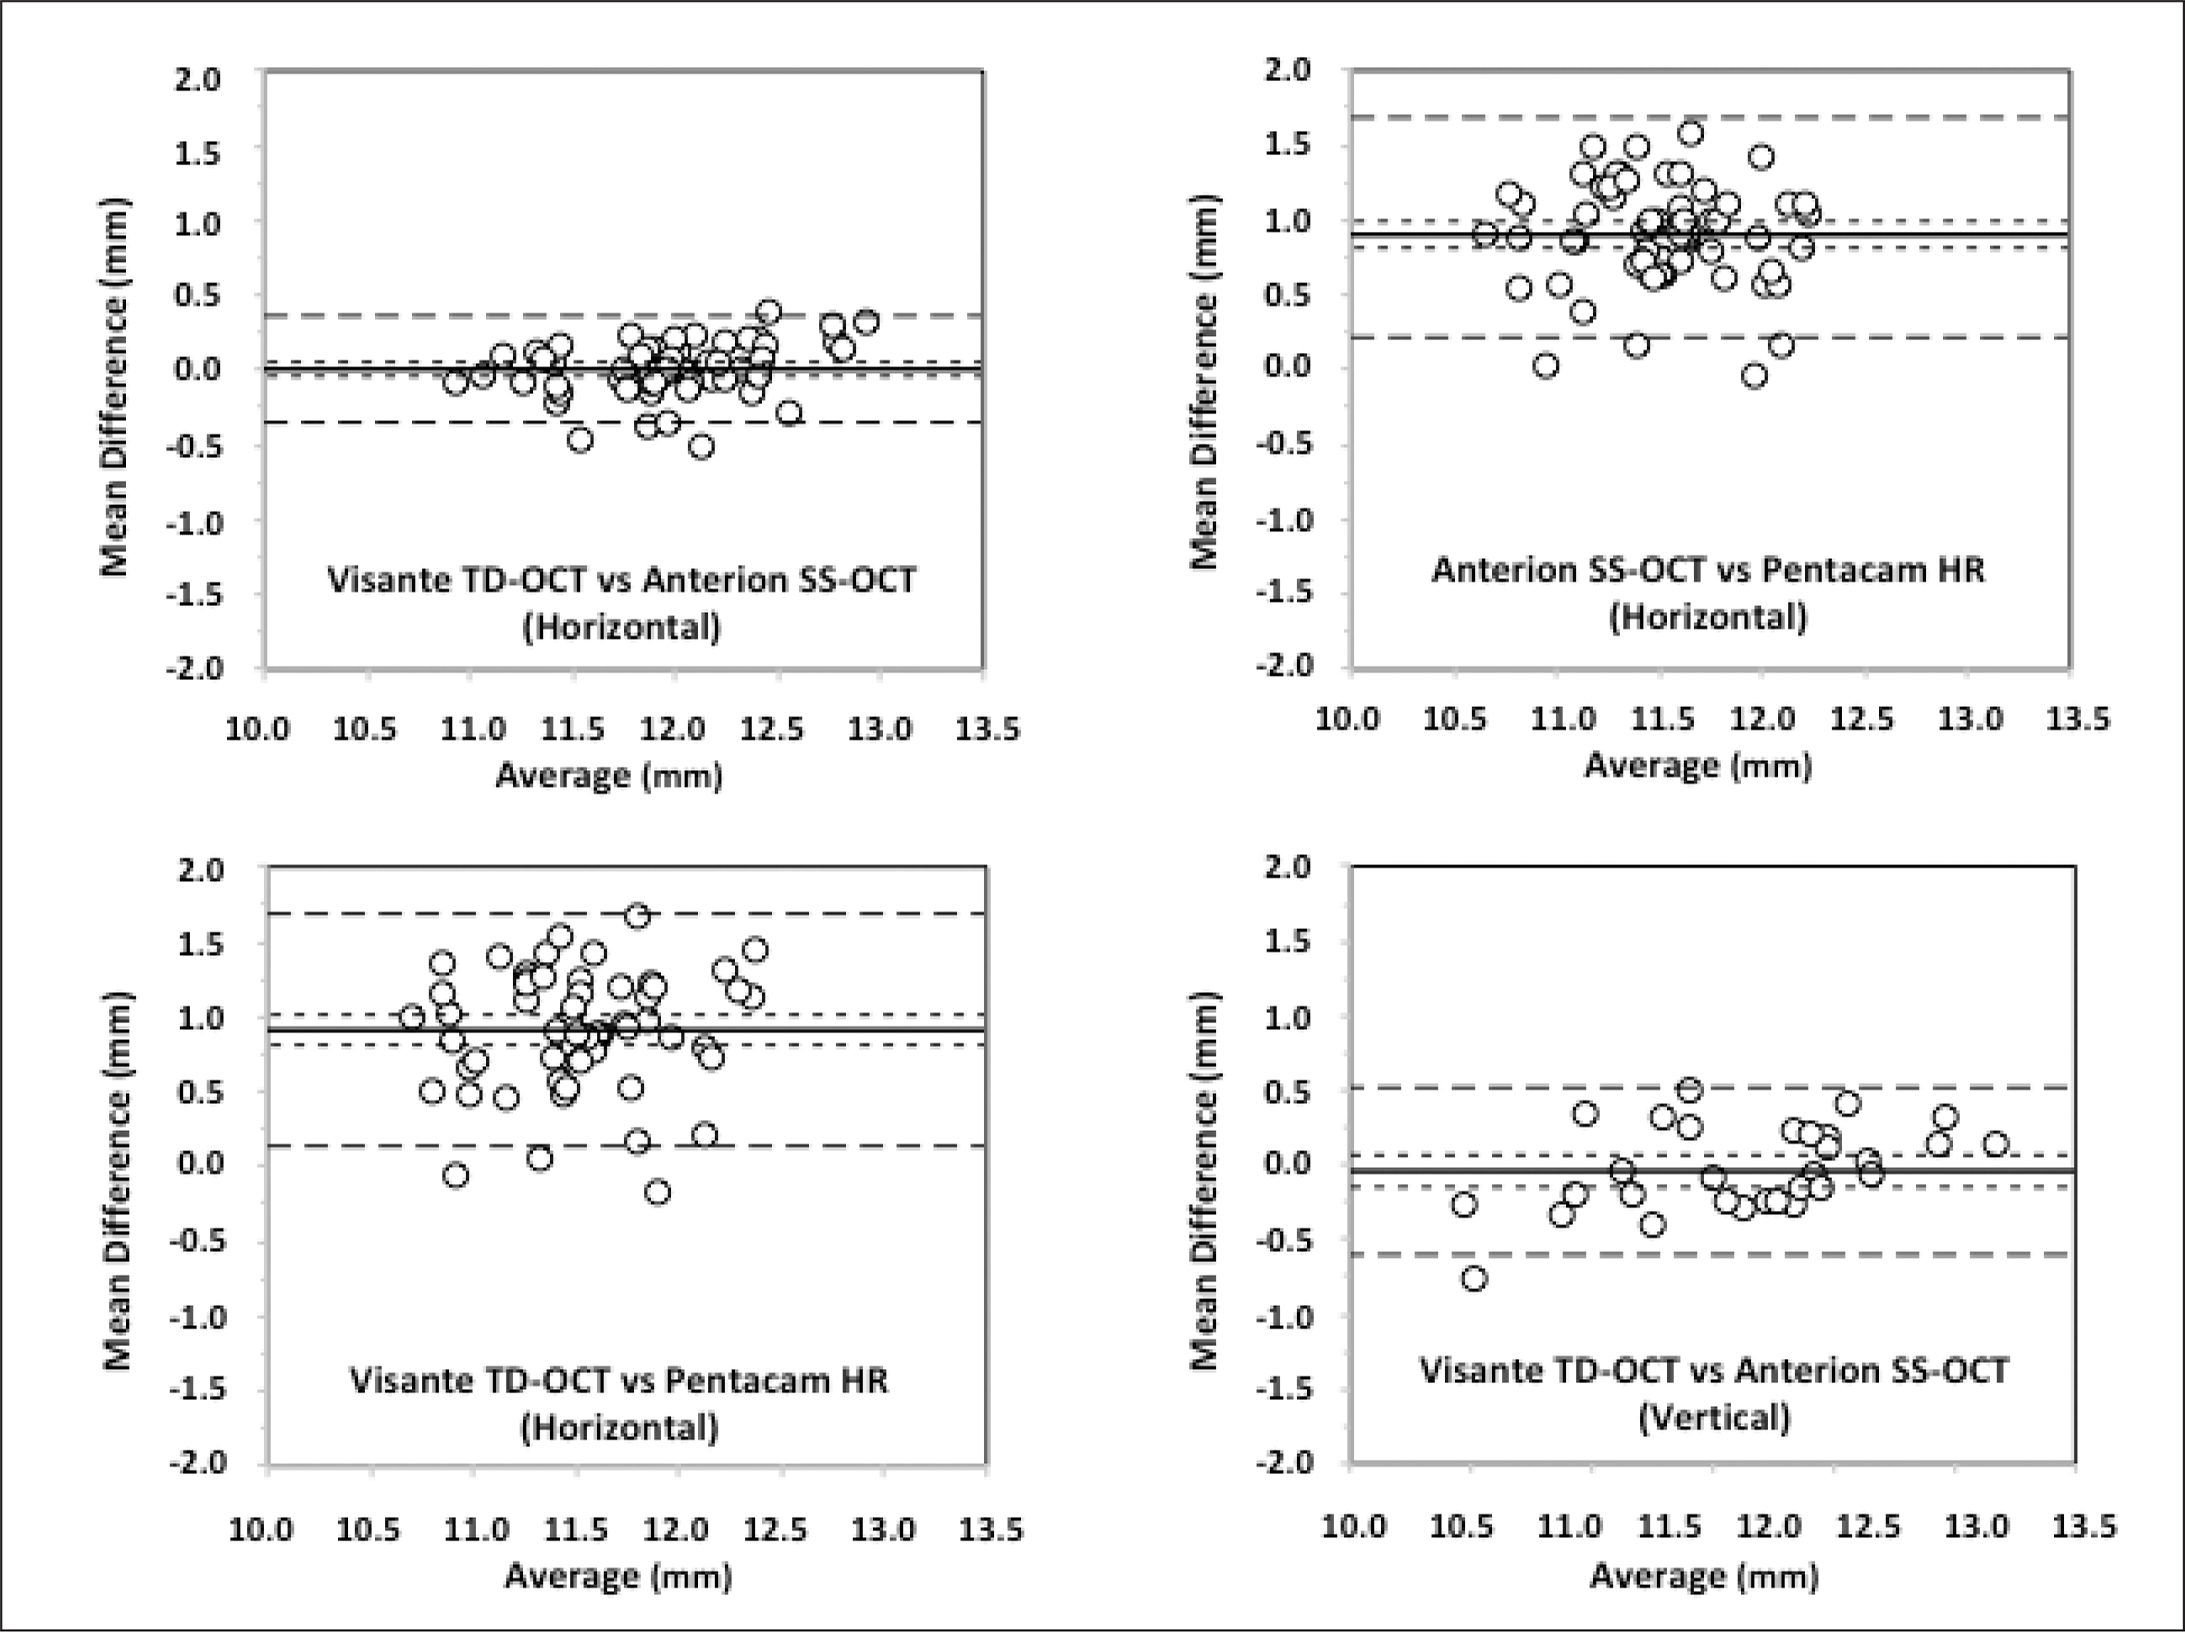 Bland-Altman plots obtained showing the mean difference versus average for the comparison between the different devices measuring horizontal and vertical angle-to-angle distance. Mean (continuous line), lower and upper limits of agreement (±1.96 standard deviation, standard deviation, peripheral dotted lines), and lower and upper confidence intervals (95%) are depicted. The Anterion SS-OCT is manufactured by Heidelberg Engineering GmbH, the Visante TD-OCT is manufactured by Carl Zeiss Meditec AG, and the Pentacam HR Scheimpflug camera is manufactured by Oculus Optikgeräte GmbH.